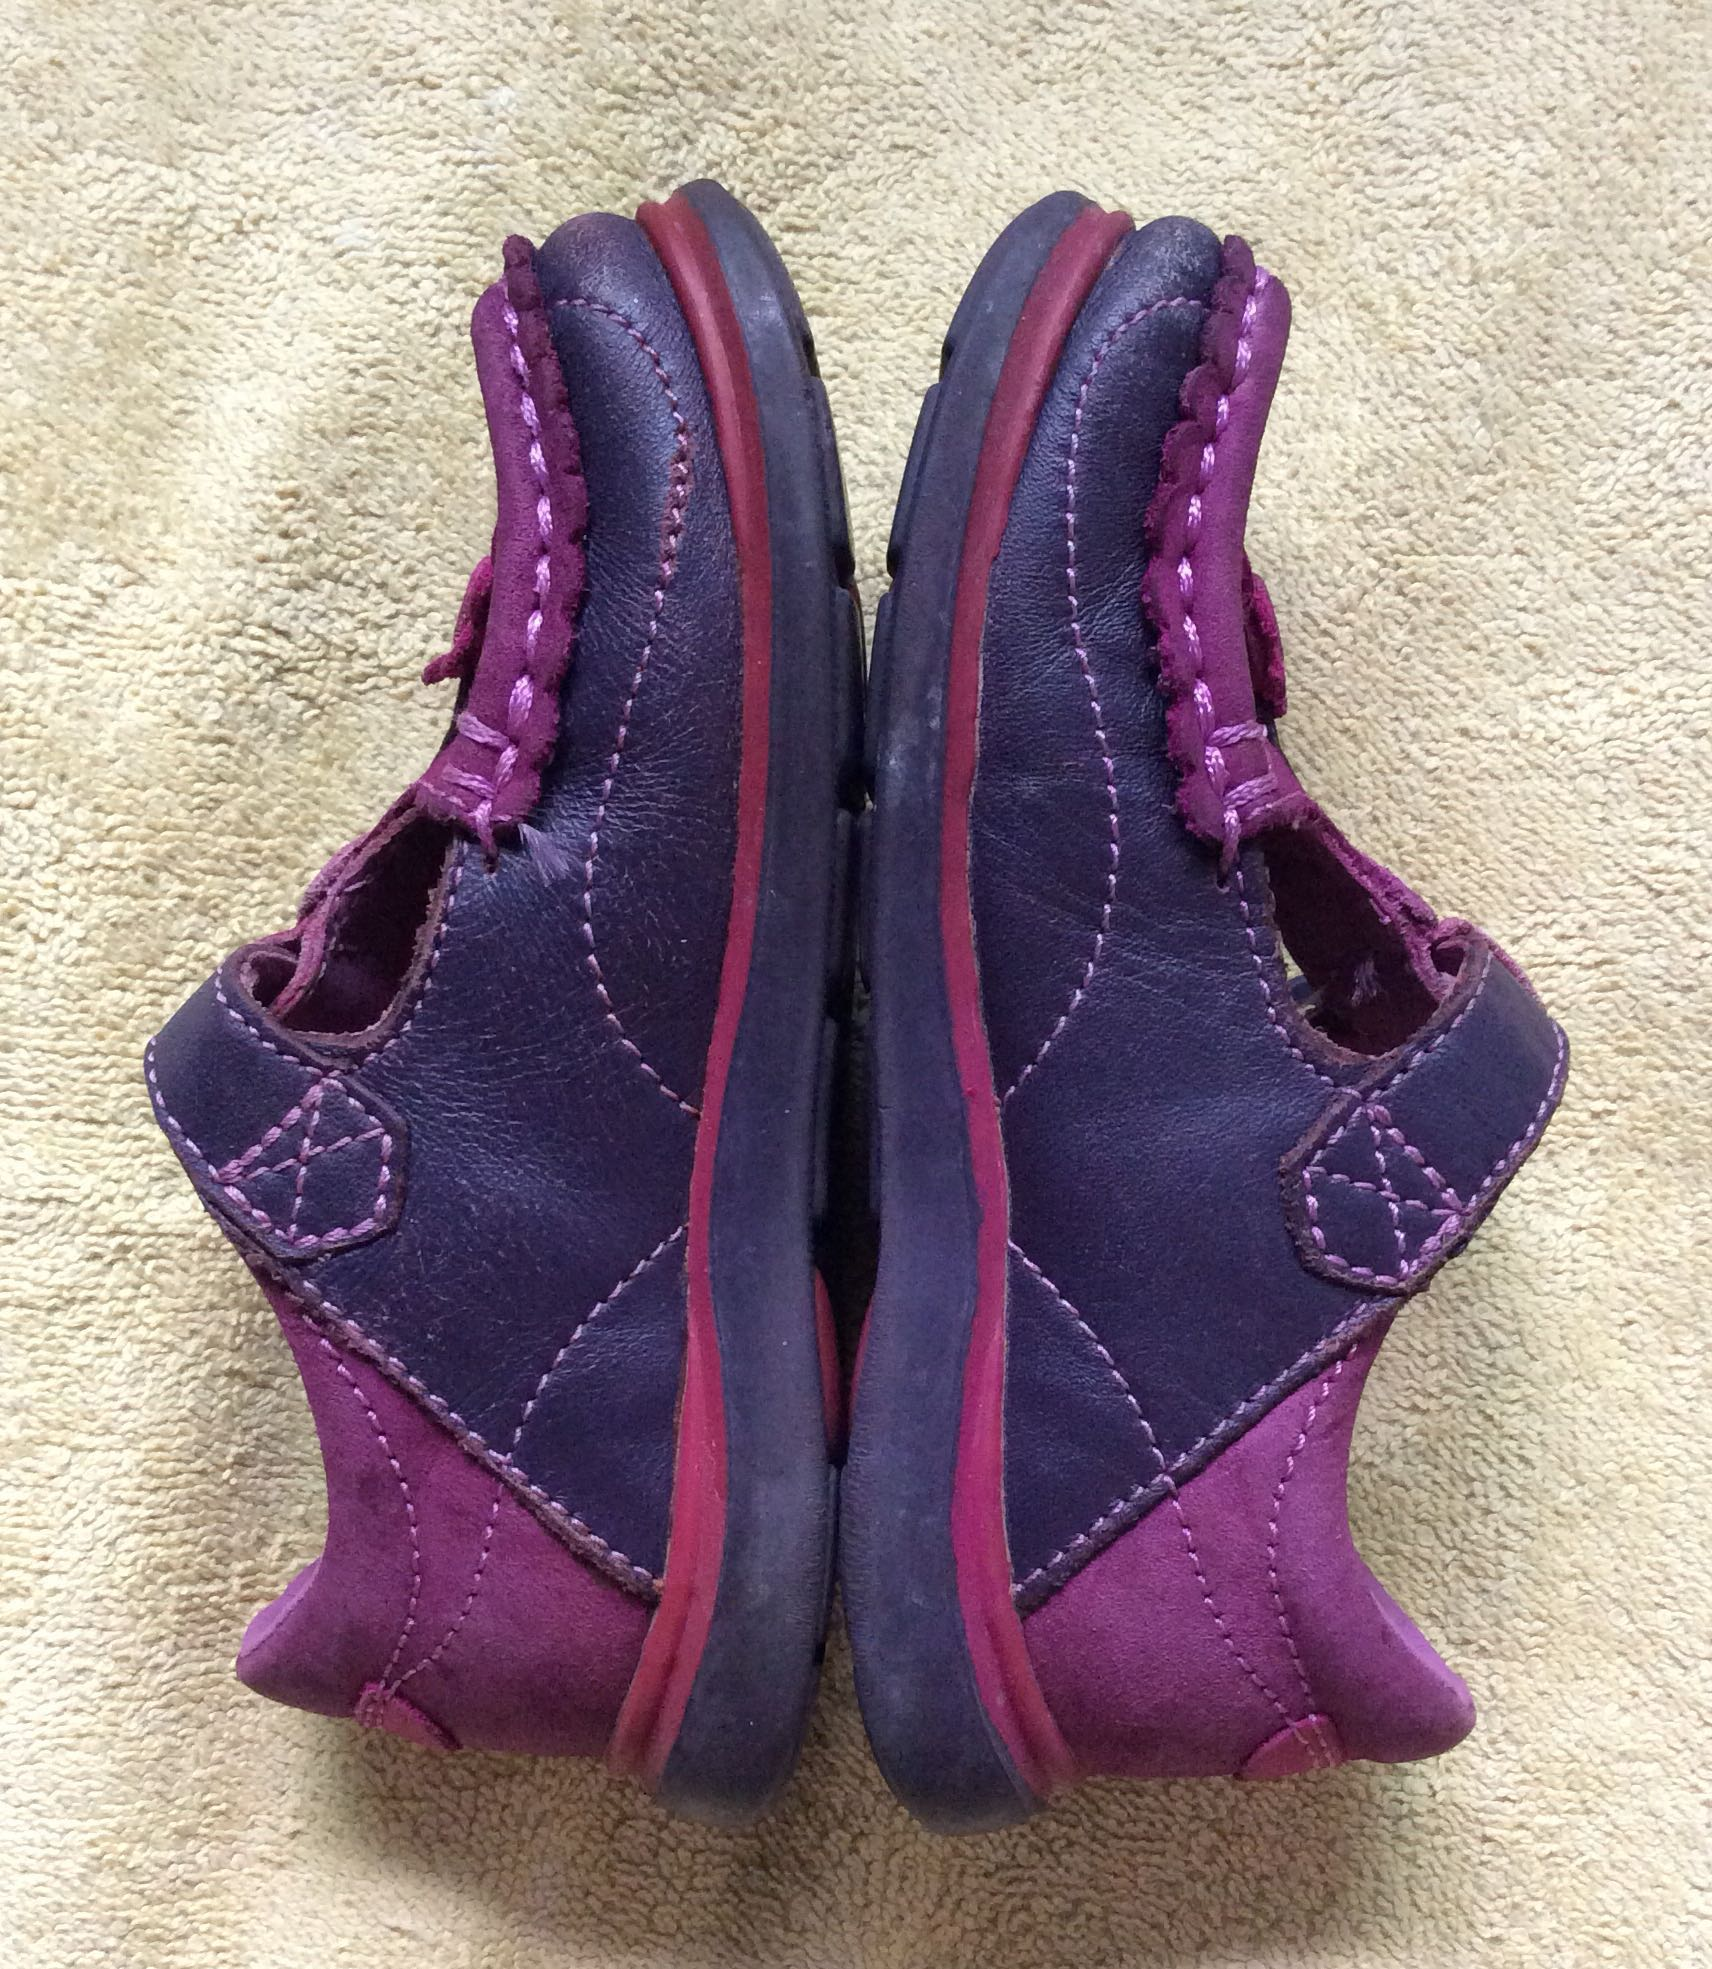 3b15920675e0 8 10 Clarks pink purple baby   toddler   kids   girl   gal leather shoes  size 6 16cm